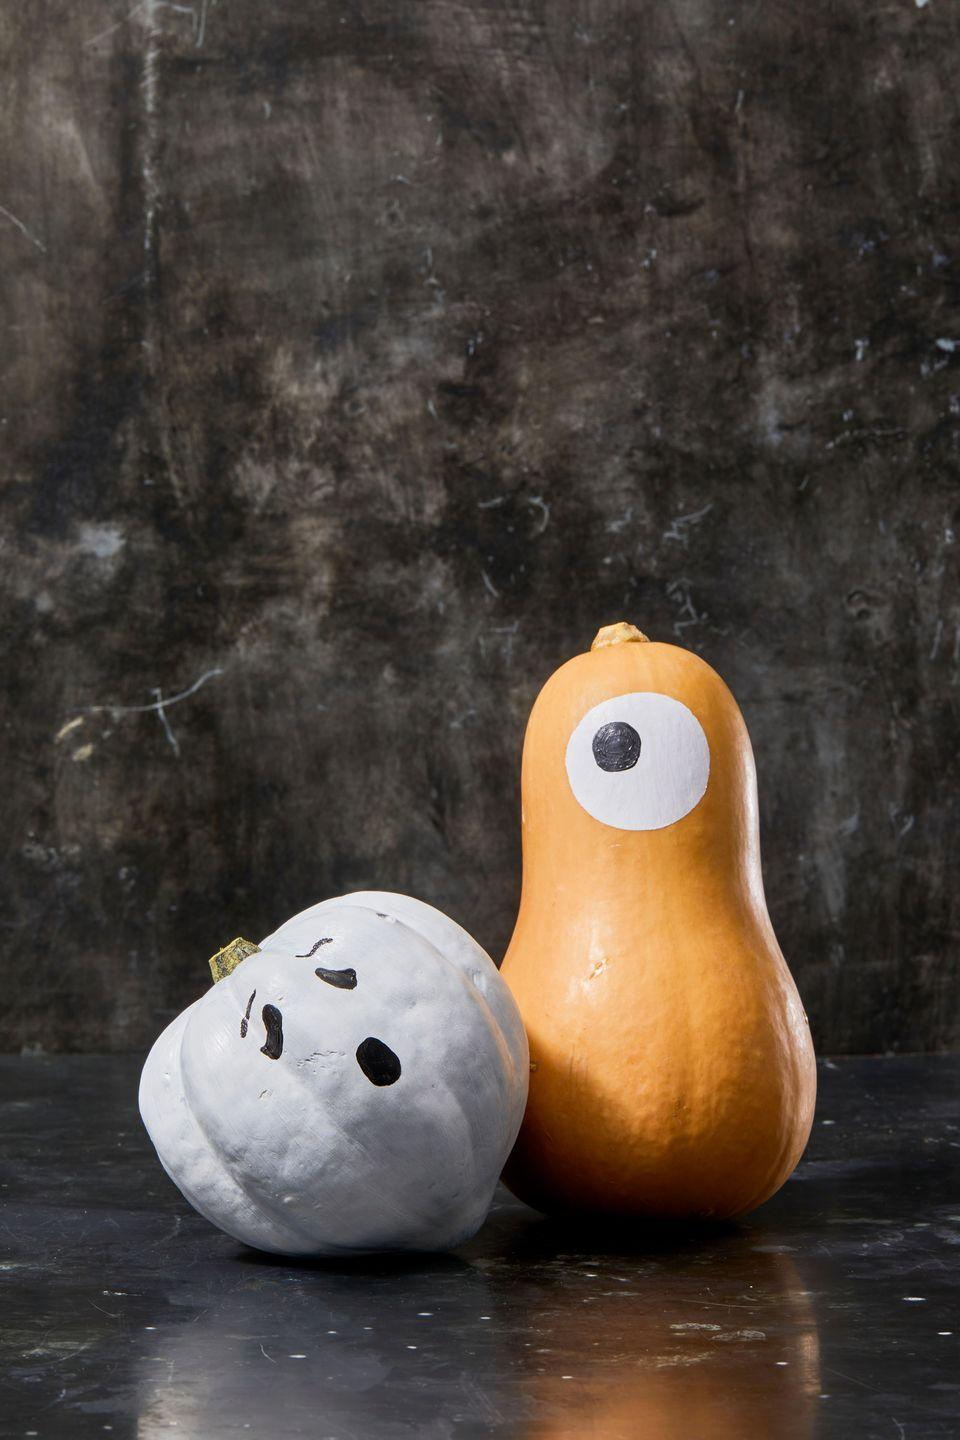 "<p>These super-cute painted ghosts aren't pumpkins at all, but that doesn't make them any less festive. Play around with different shapes from your grocery store or farmer's market, and add cute, playful faces.</p><p><a class=""link rapid-noclick-resp"" href=""https://www.amazon.com/Apple-Barrel-Acrylic-PROMOABI-Assorted/dp/B00ATJSD8I/ref=asc_df_B00ATJSD8I/?tag=syn-yahoo-20&ascsubtag=%5Bartid%7C10055.g.1714%5Bsrc%7Cyahoo-us"" rel=""nofollow noopener"" target=""_blank"" data-ylk=""slk:SHOP ACRYLIC PAINT"">SHOP ACRYLIC PAINT </a></p>"